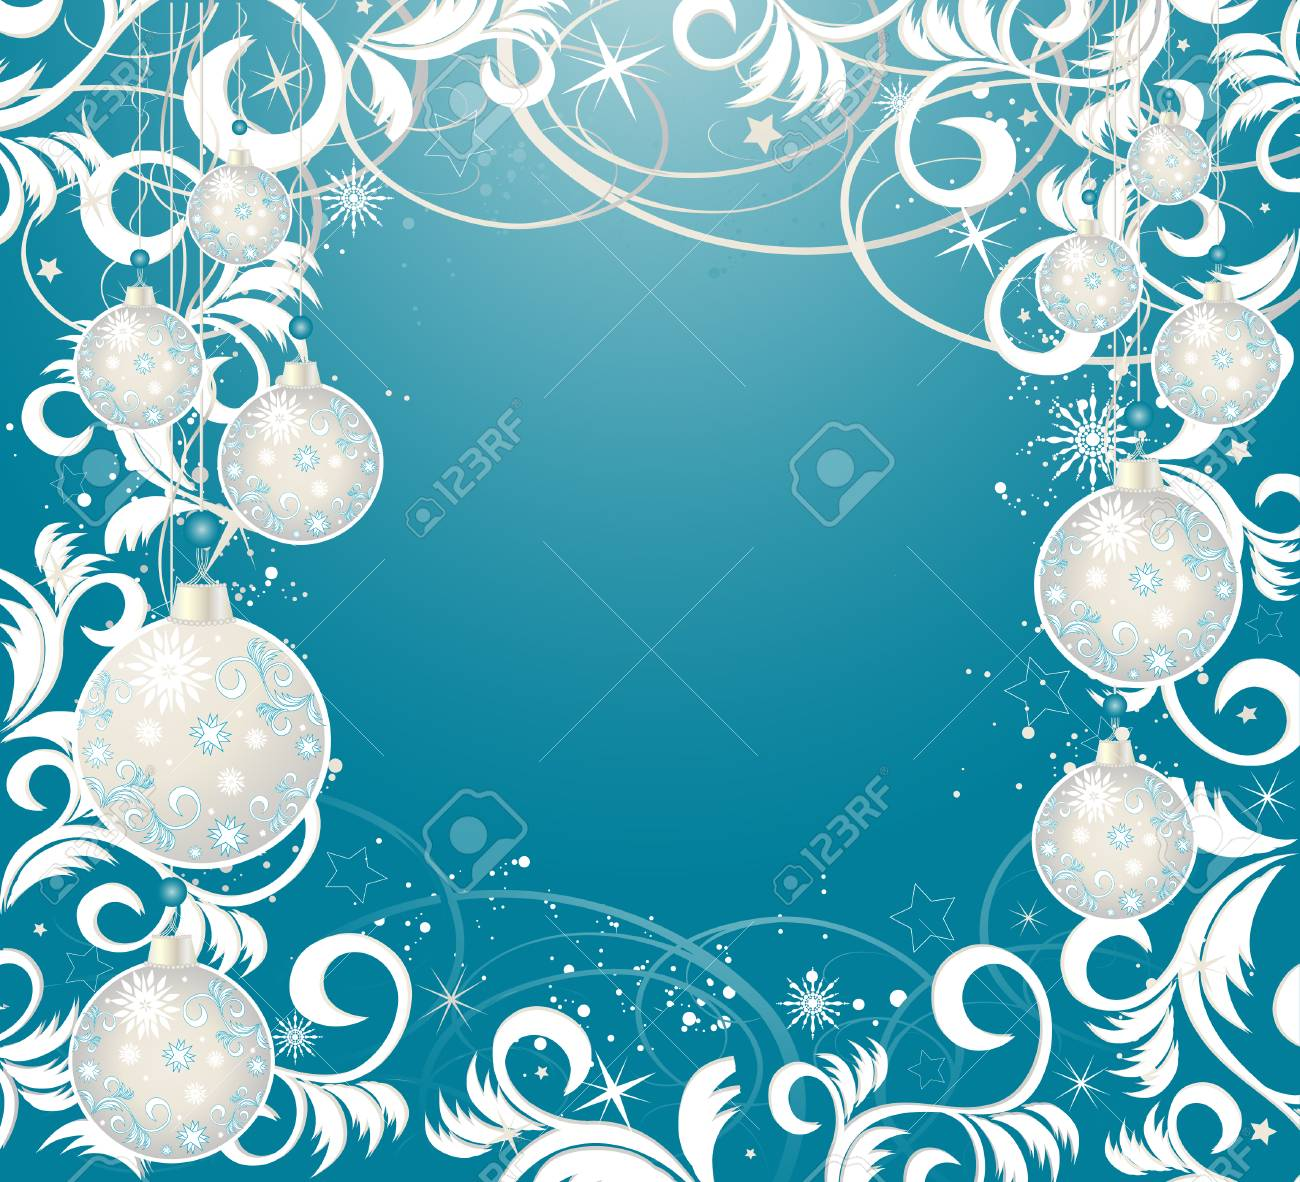 Christmas background with balls, stars and snowflakes Stock Vector - 5713583